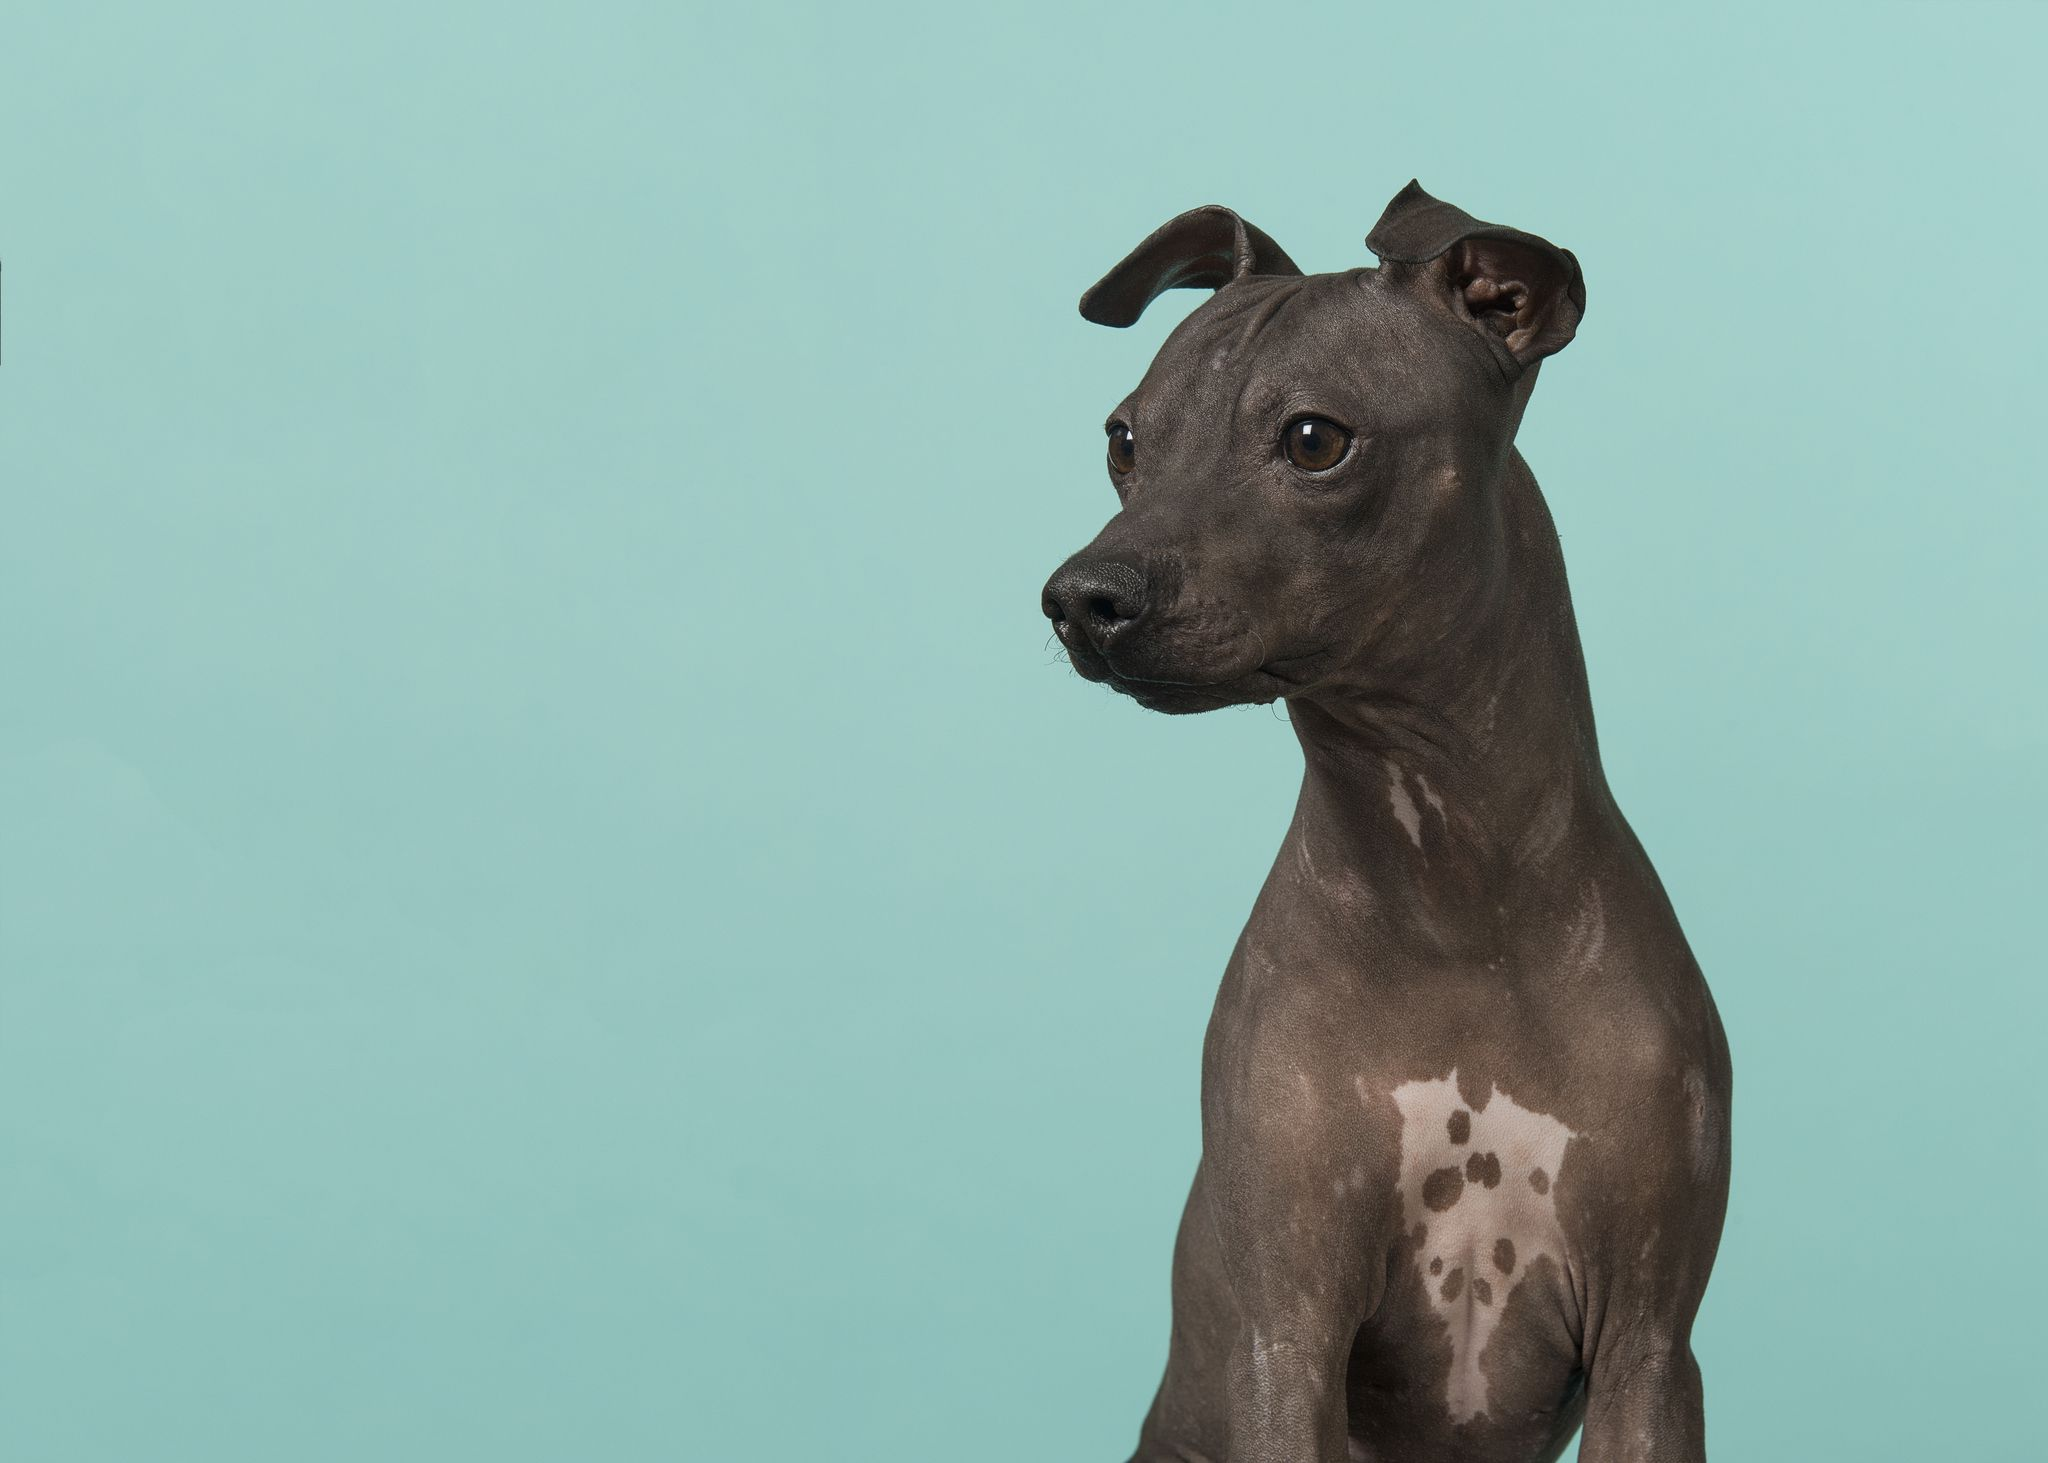 A hairless black dog in front of a light blue background.